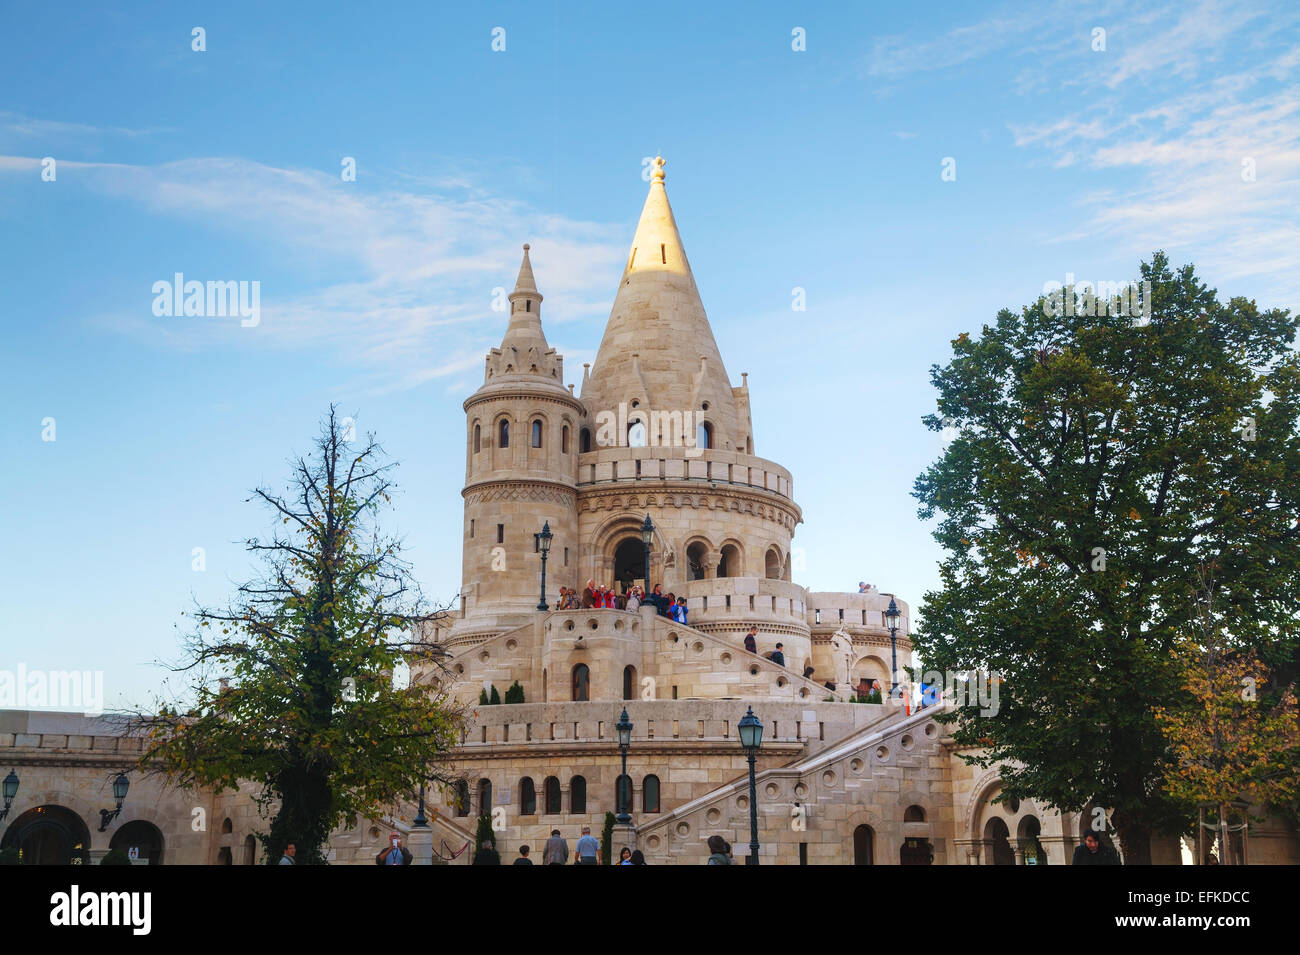 BUDAPEST - OCTOBER 21: Fisherman bastion on October 21, 2014 in Budapest, Hungary. - Stock Image